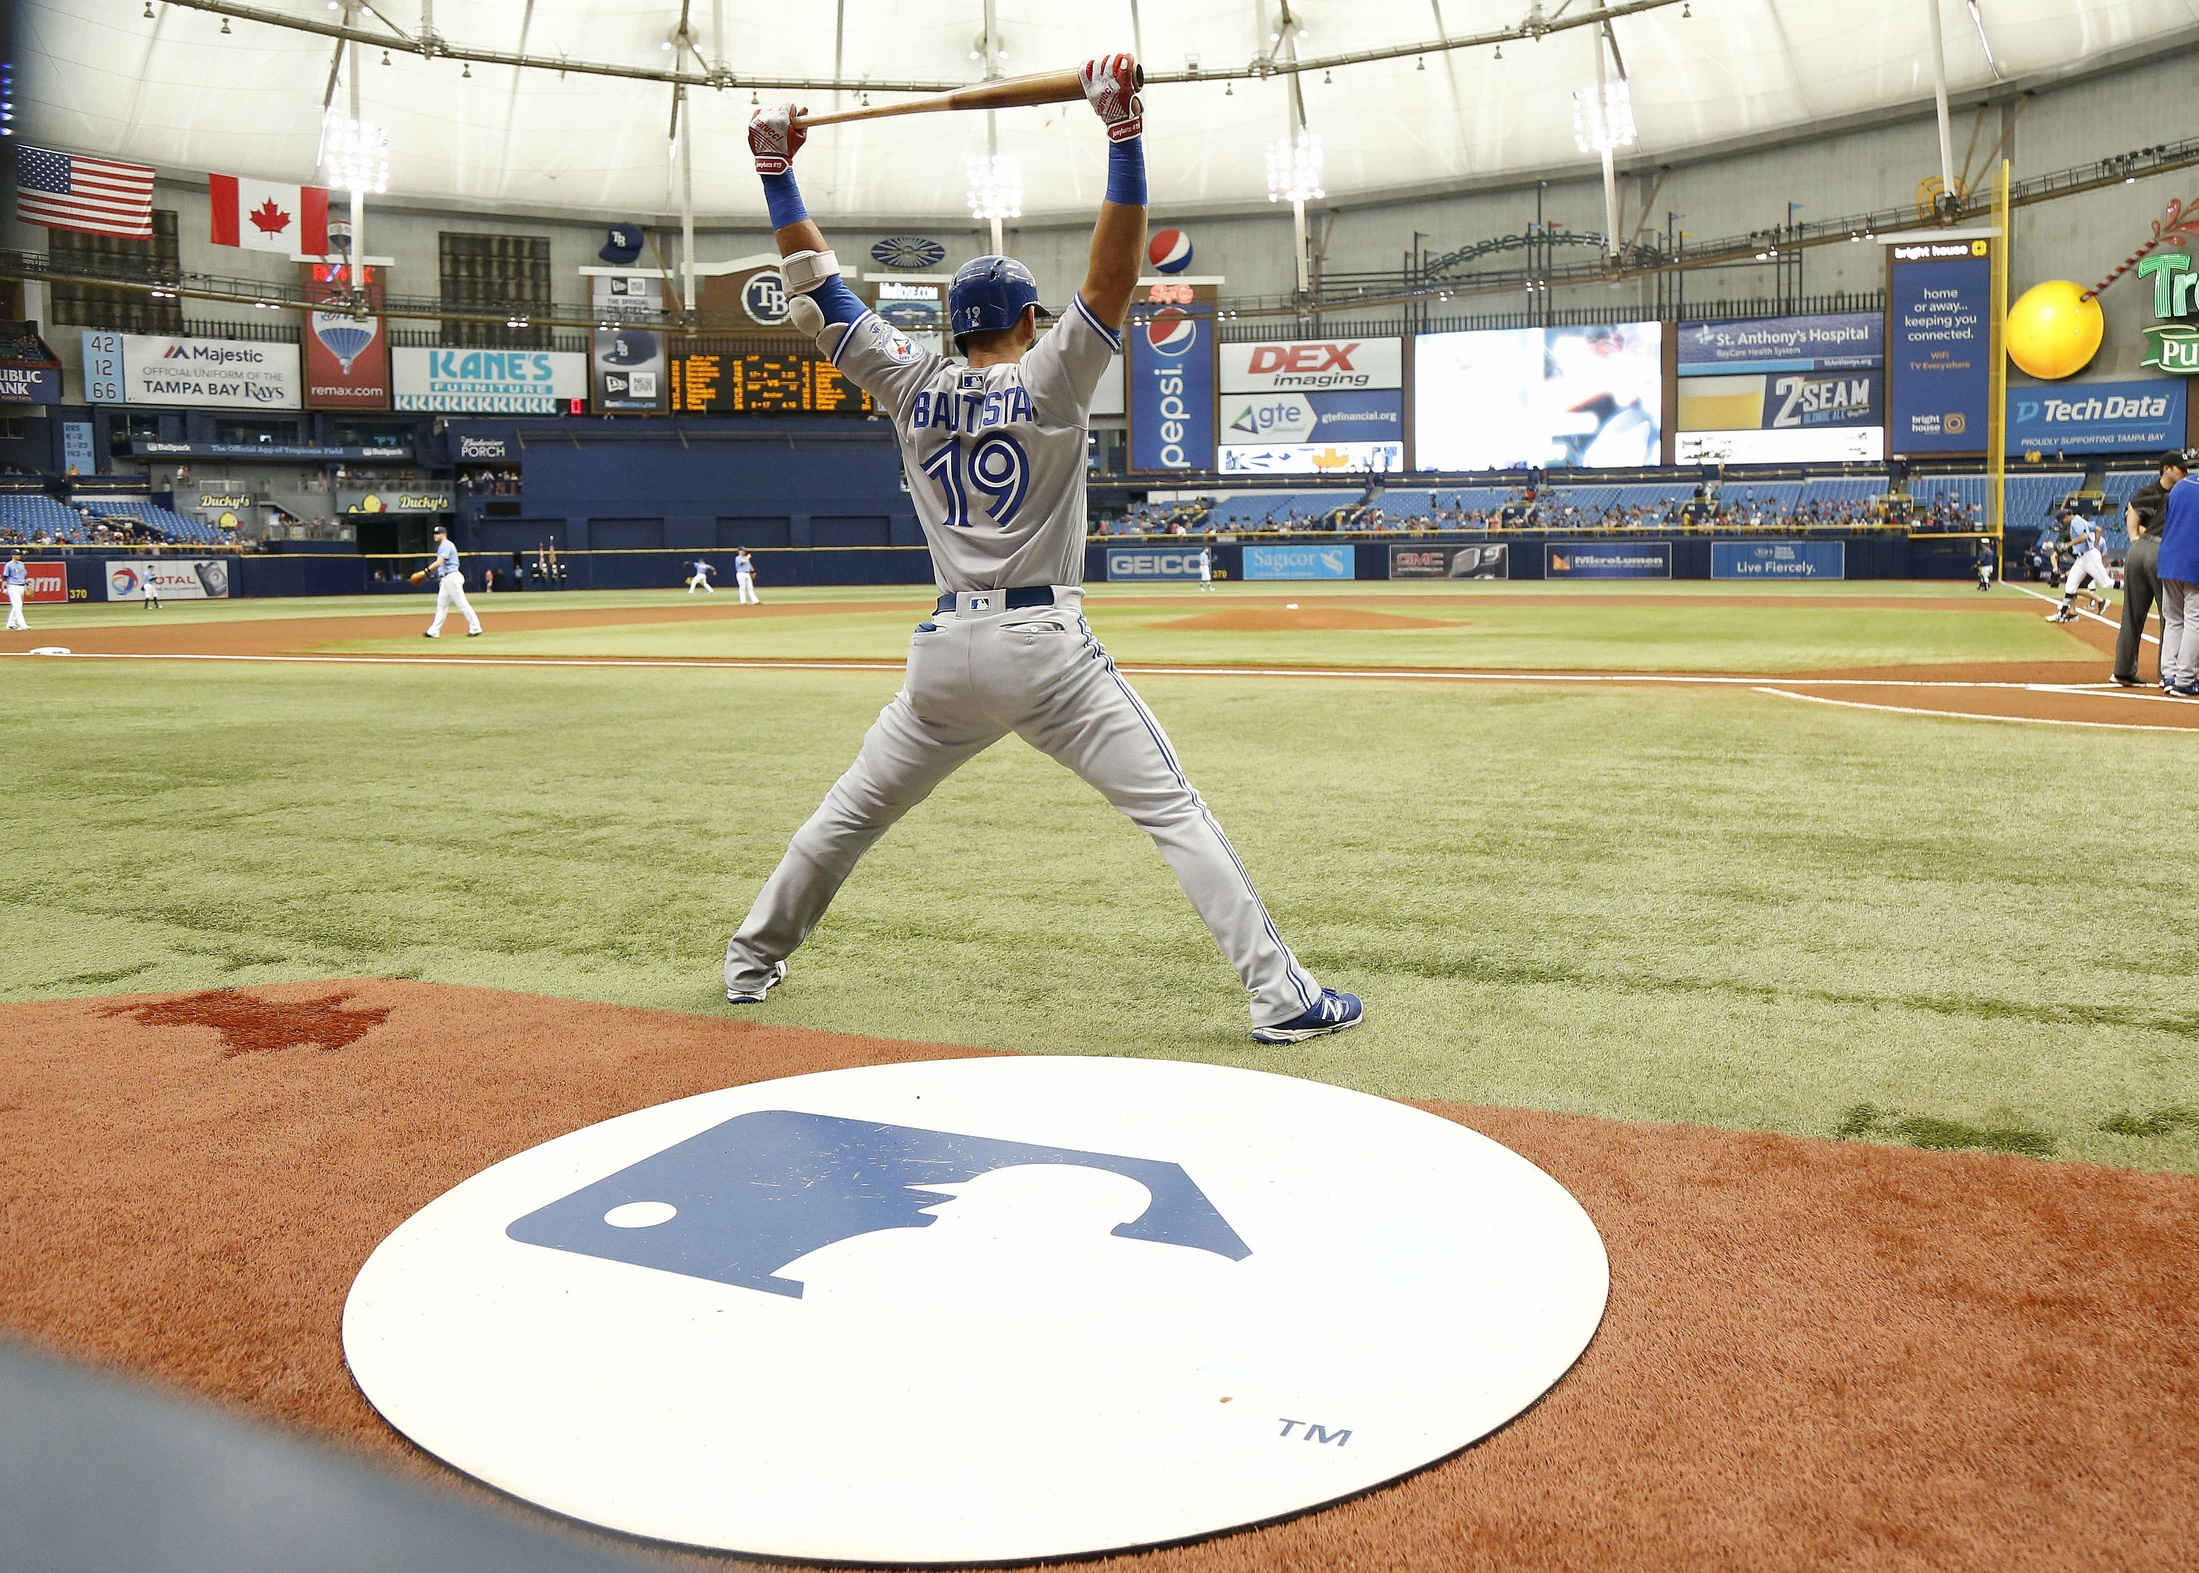 Sep 4, 2016; St. Petersburg, FL, USA; Toronto Blue Jays right fielder Jose Bautista (19) stretches while on deck to bat prior to the game against the Tampa Bay Rays at Tropicana Field. Mandatory Credit: Kim Klement-USA TODAY Sports